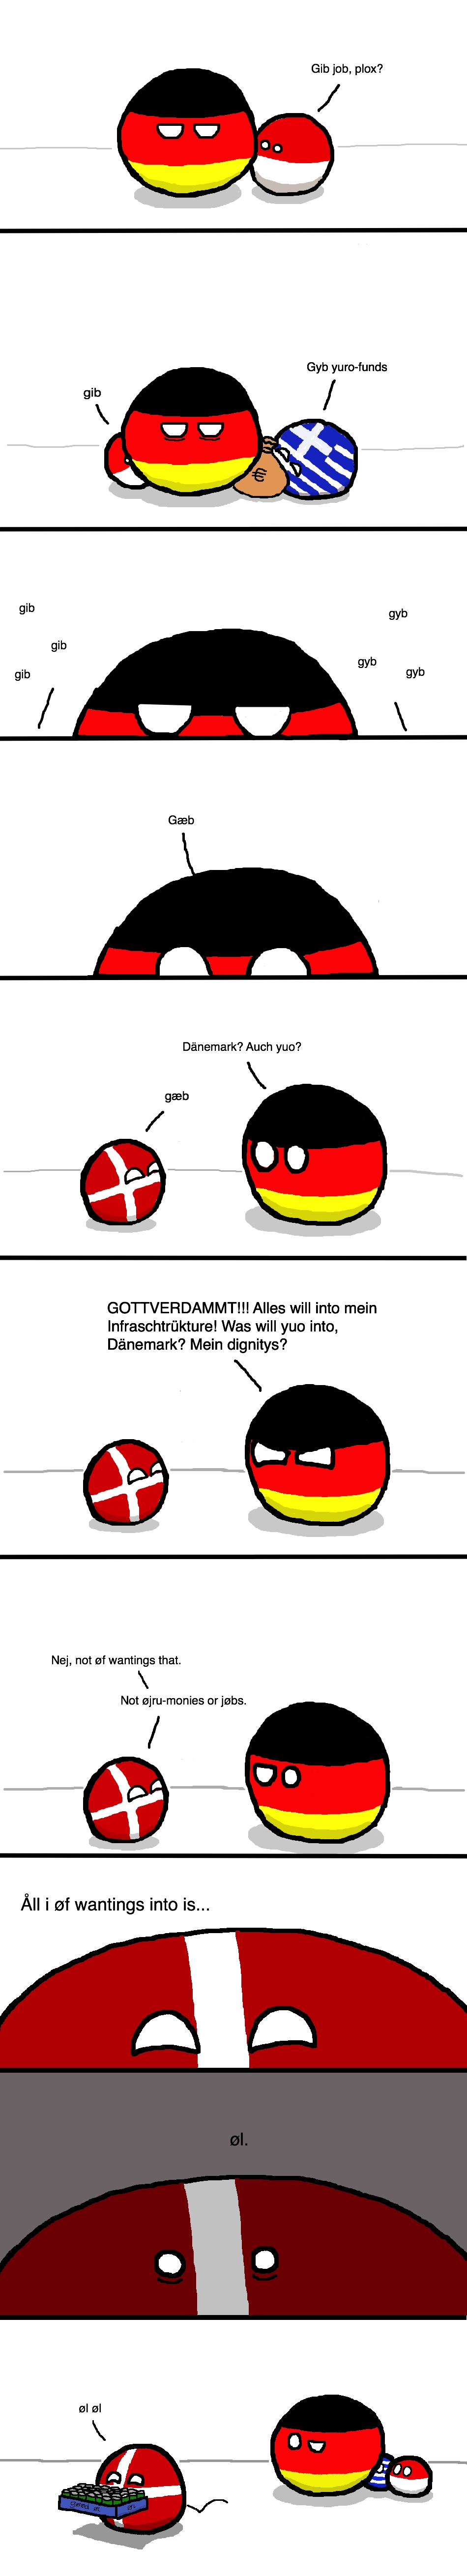 what Denmark want from Germany